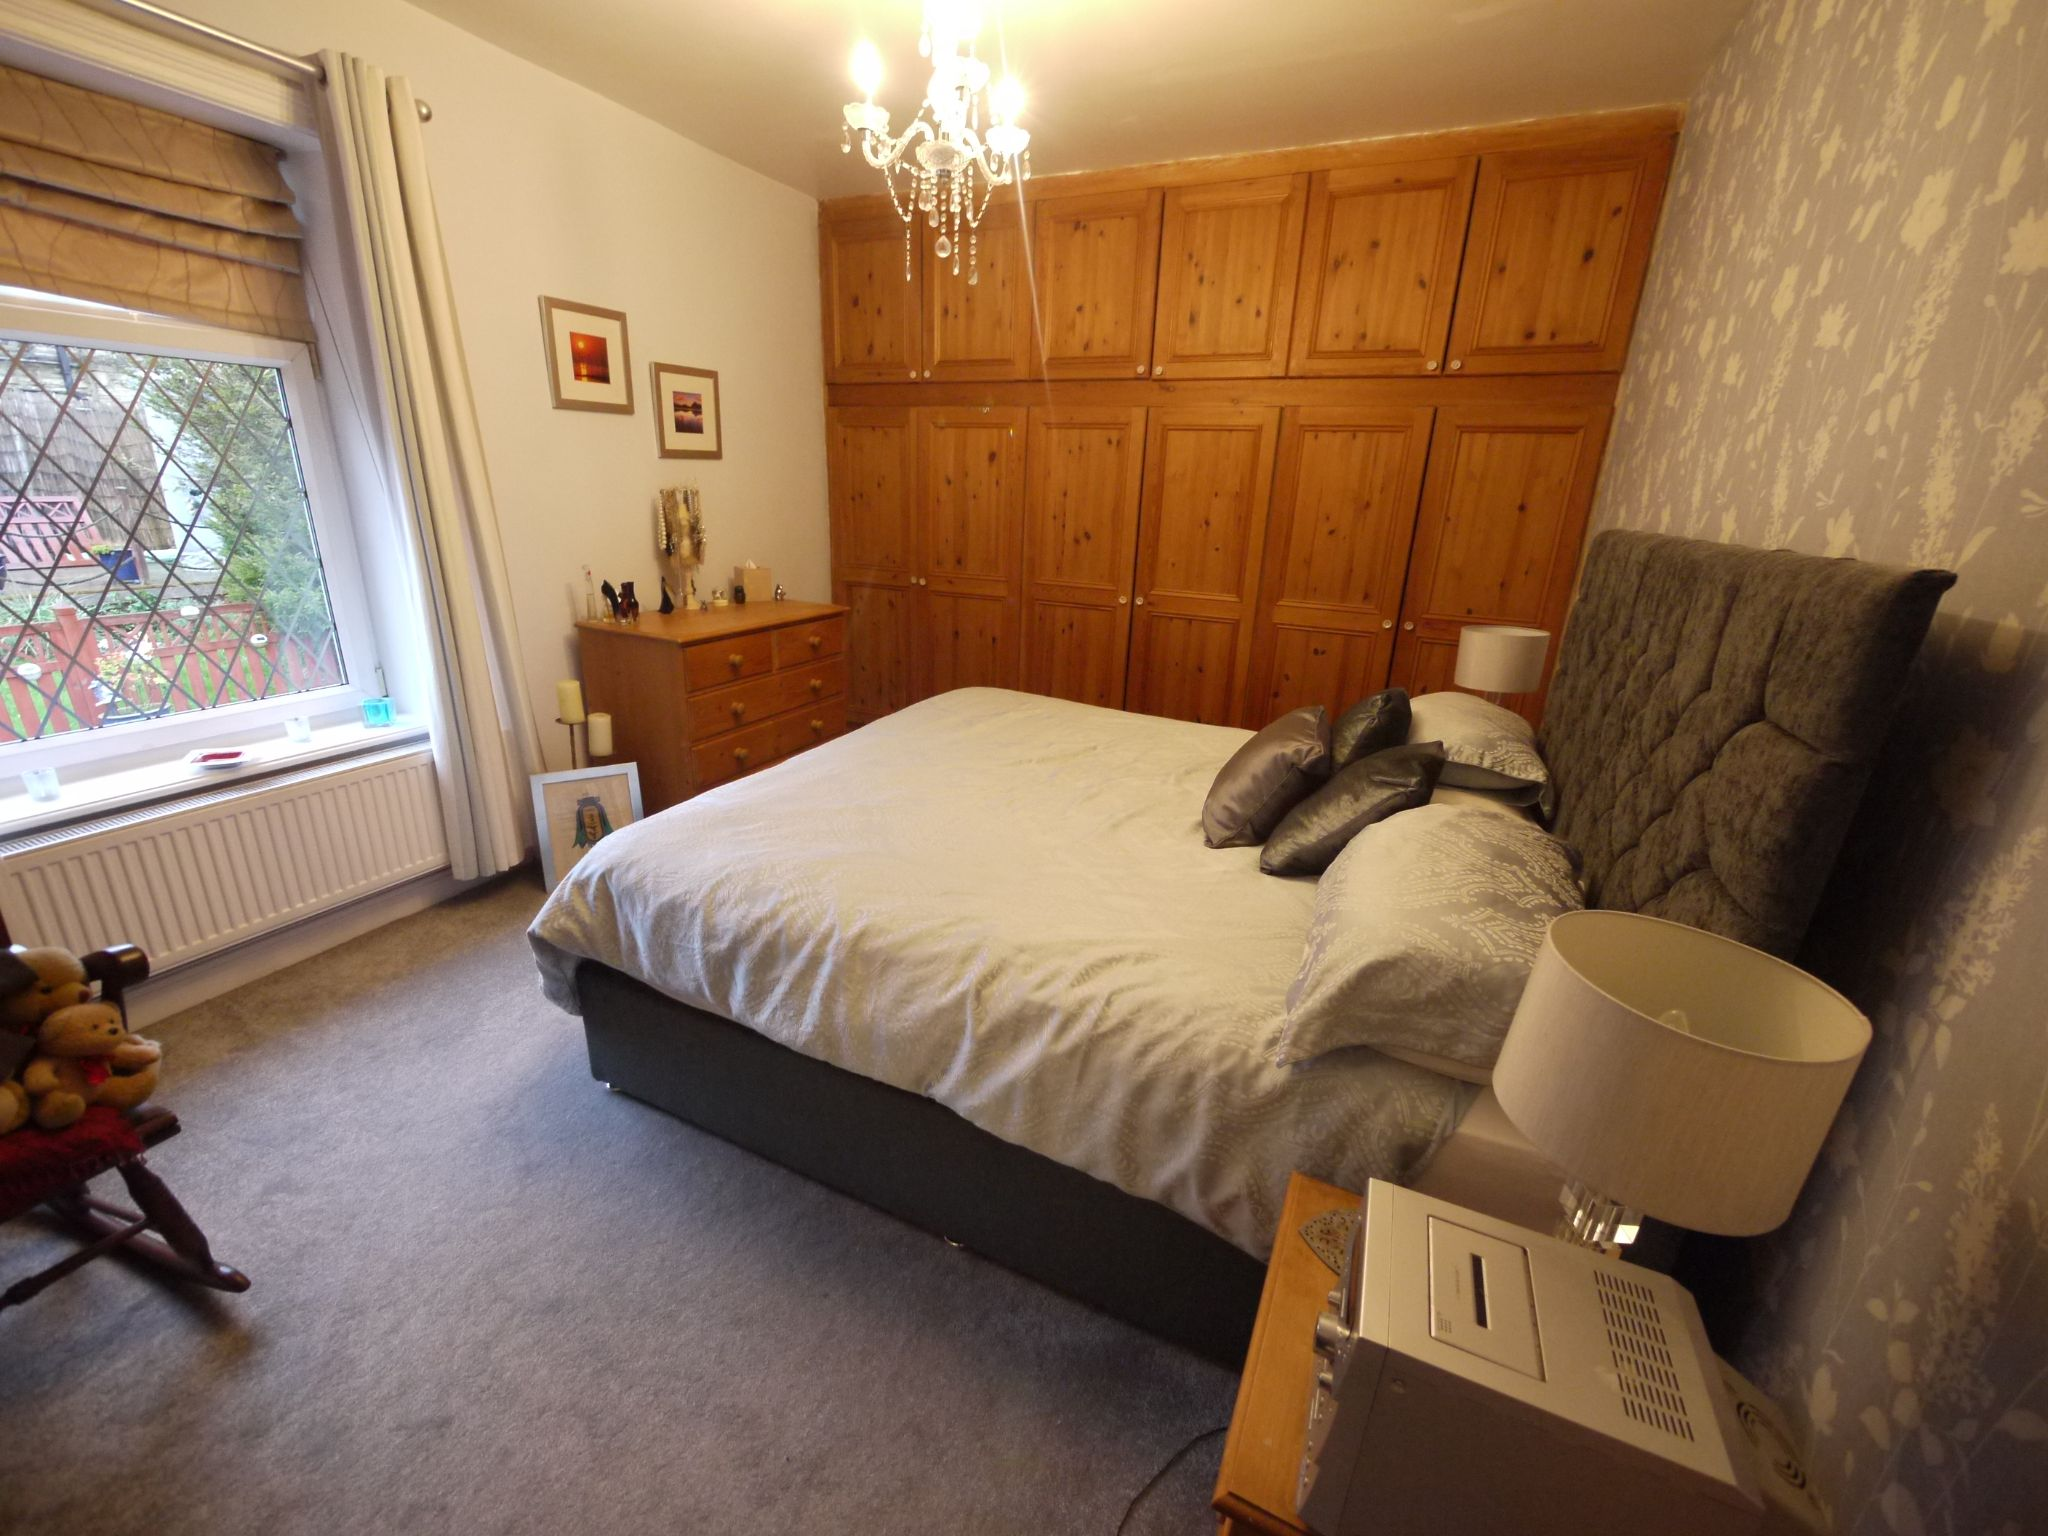 3 bedroom semi-detached house For Sale in Calderdale - Photograph 9.